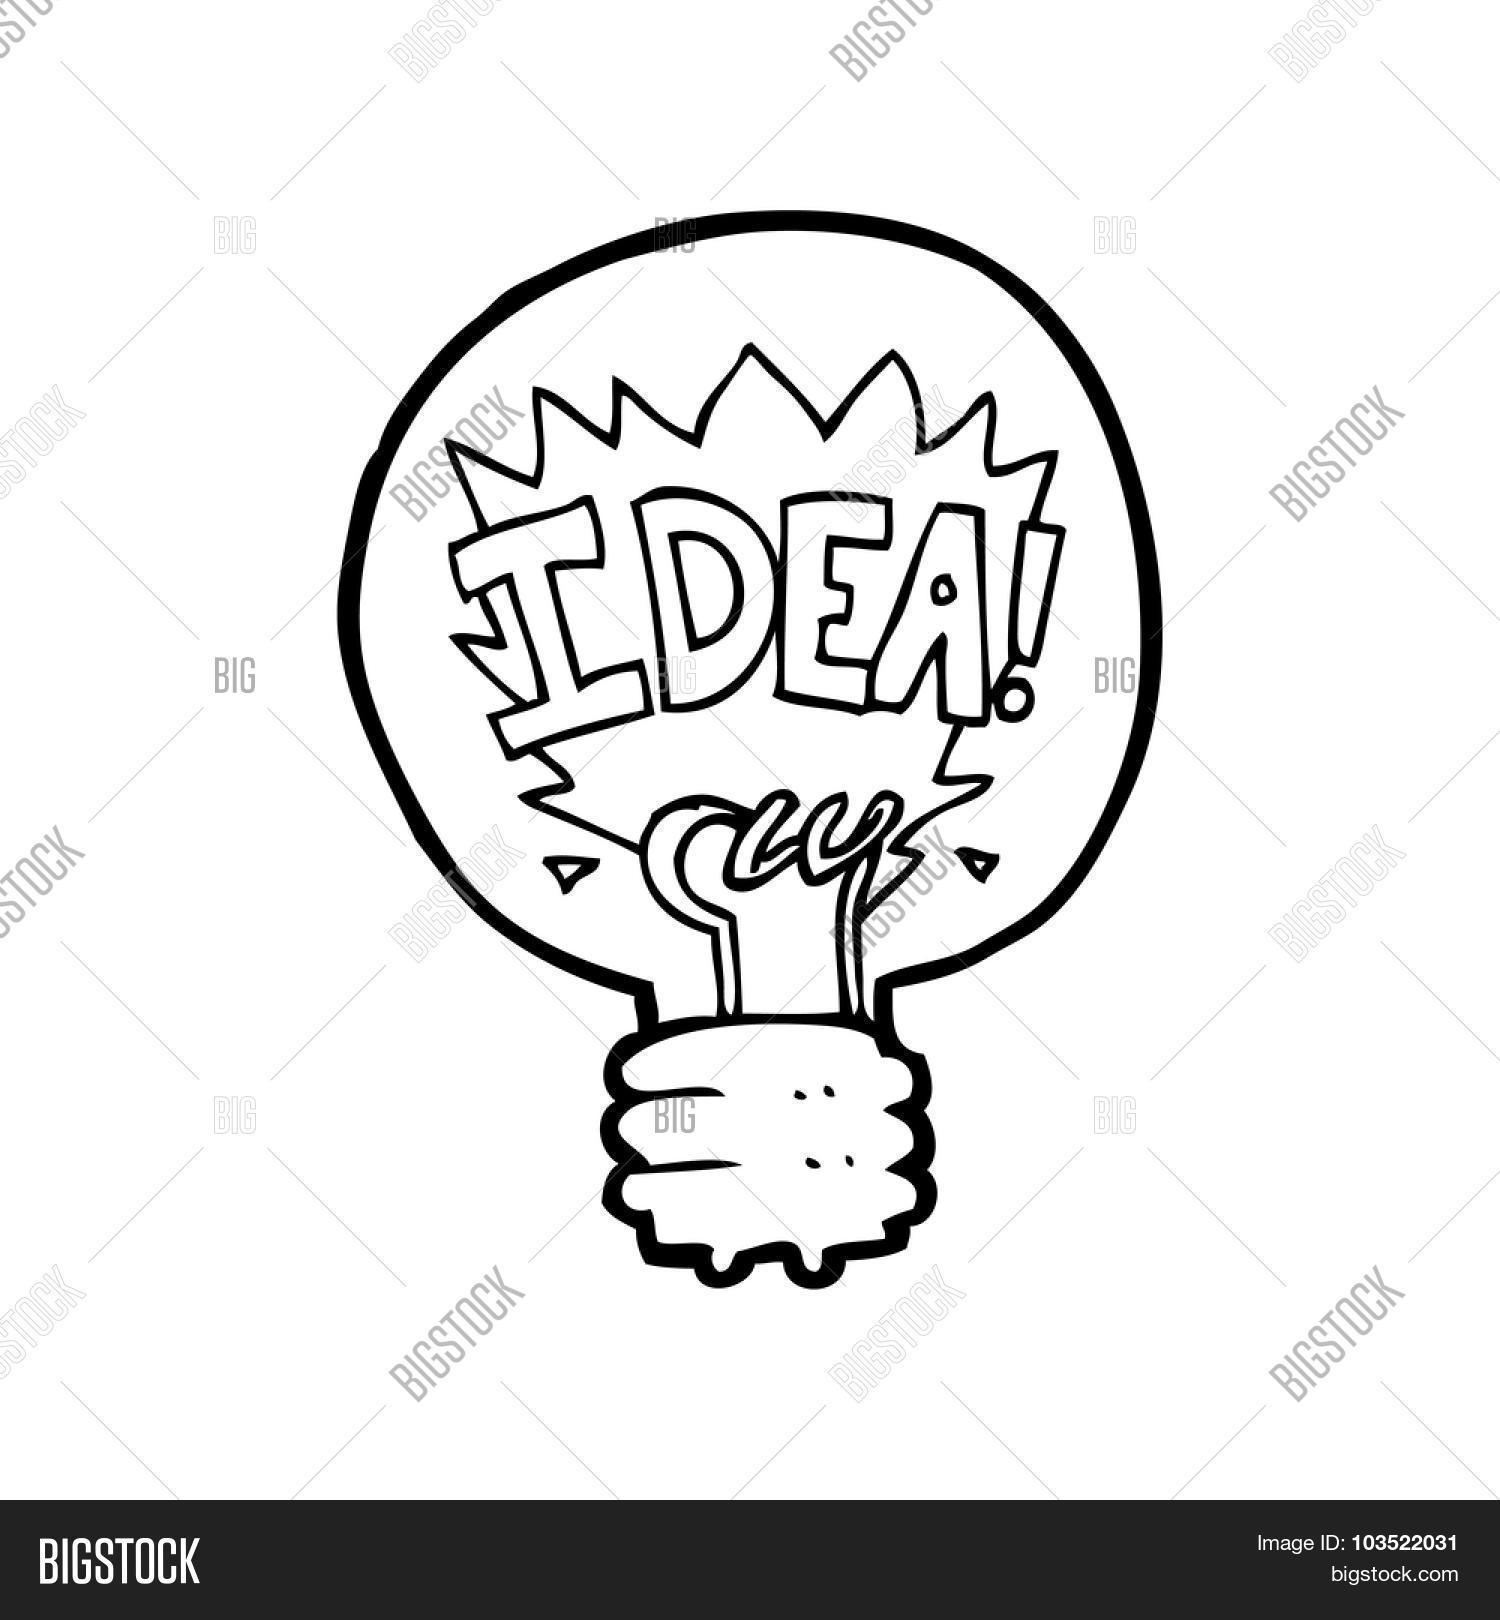 Light Bulb Line Drawing at GetDrawings.com | Free for personal use ...